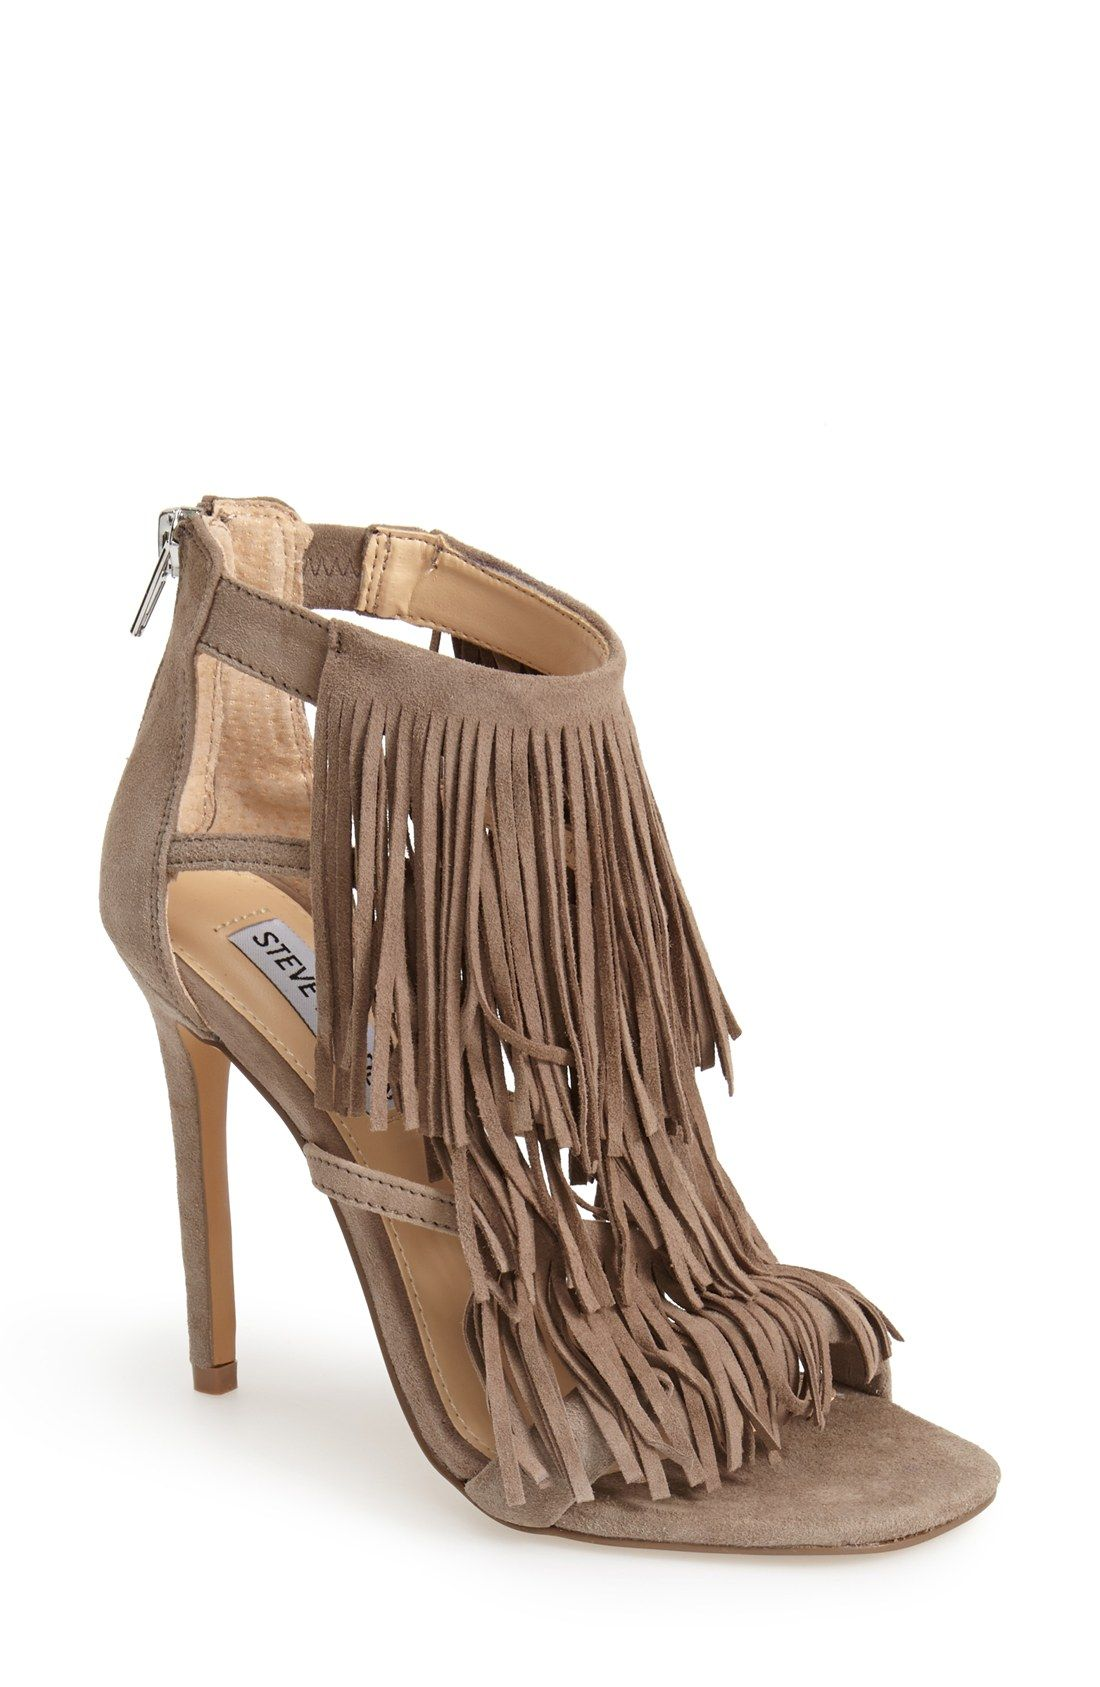 crisantemo Persona a cargo evitar  Steve Madden 'Fringly' Sandal (Women) | Nordstrom | Heels, Shoes, Fabulous  shoes